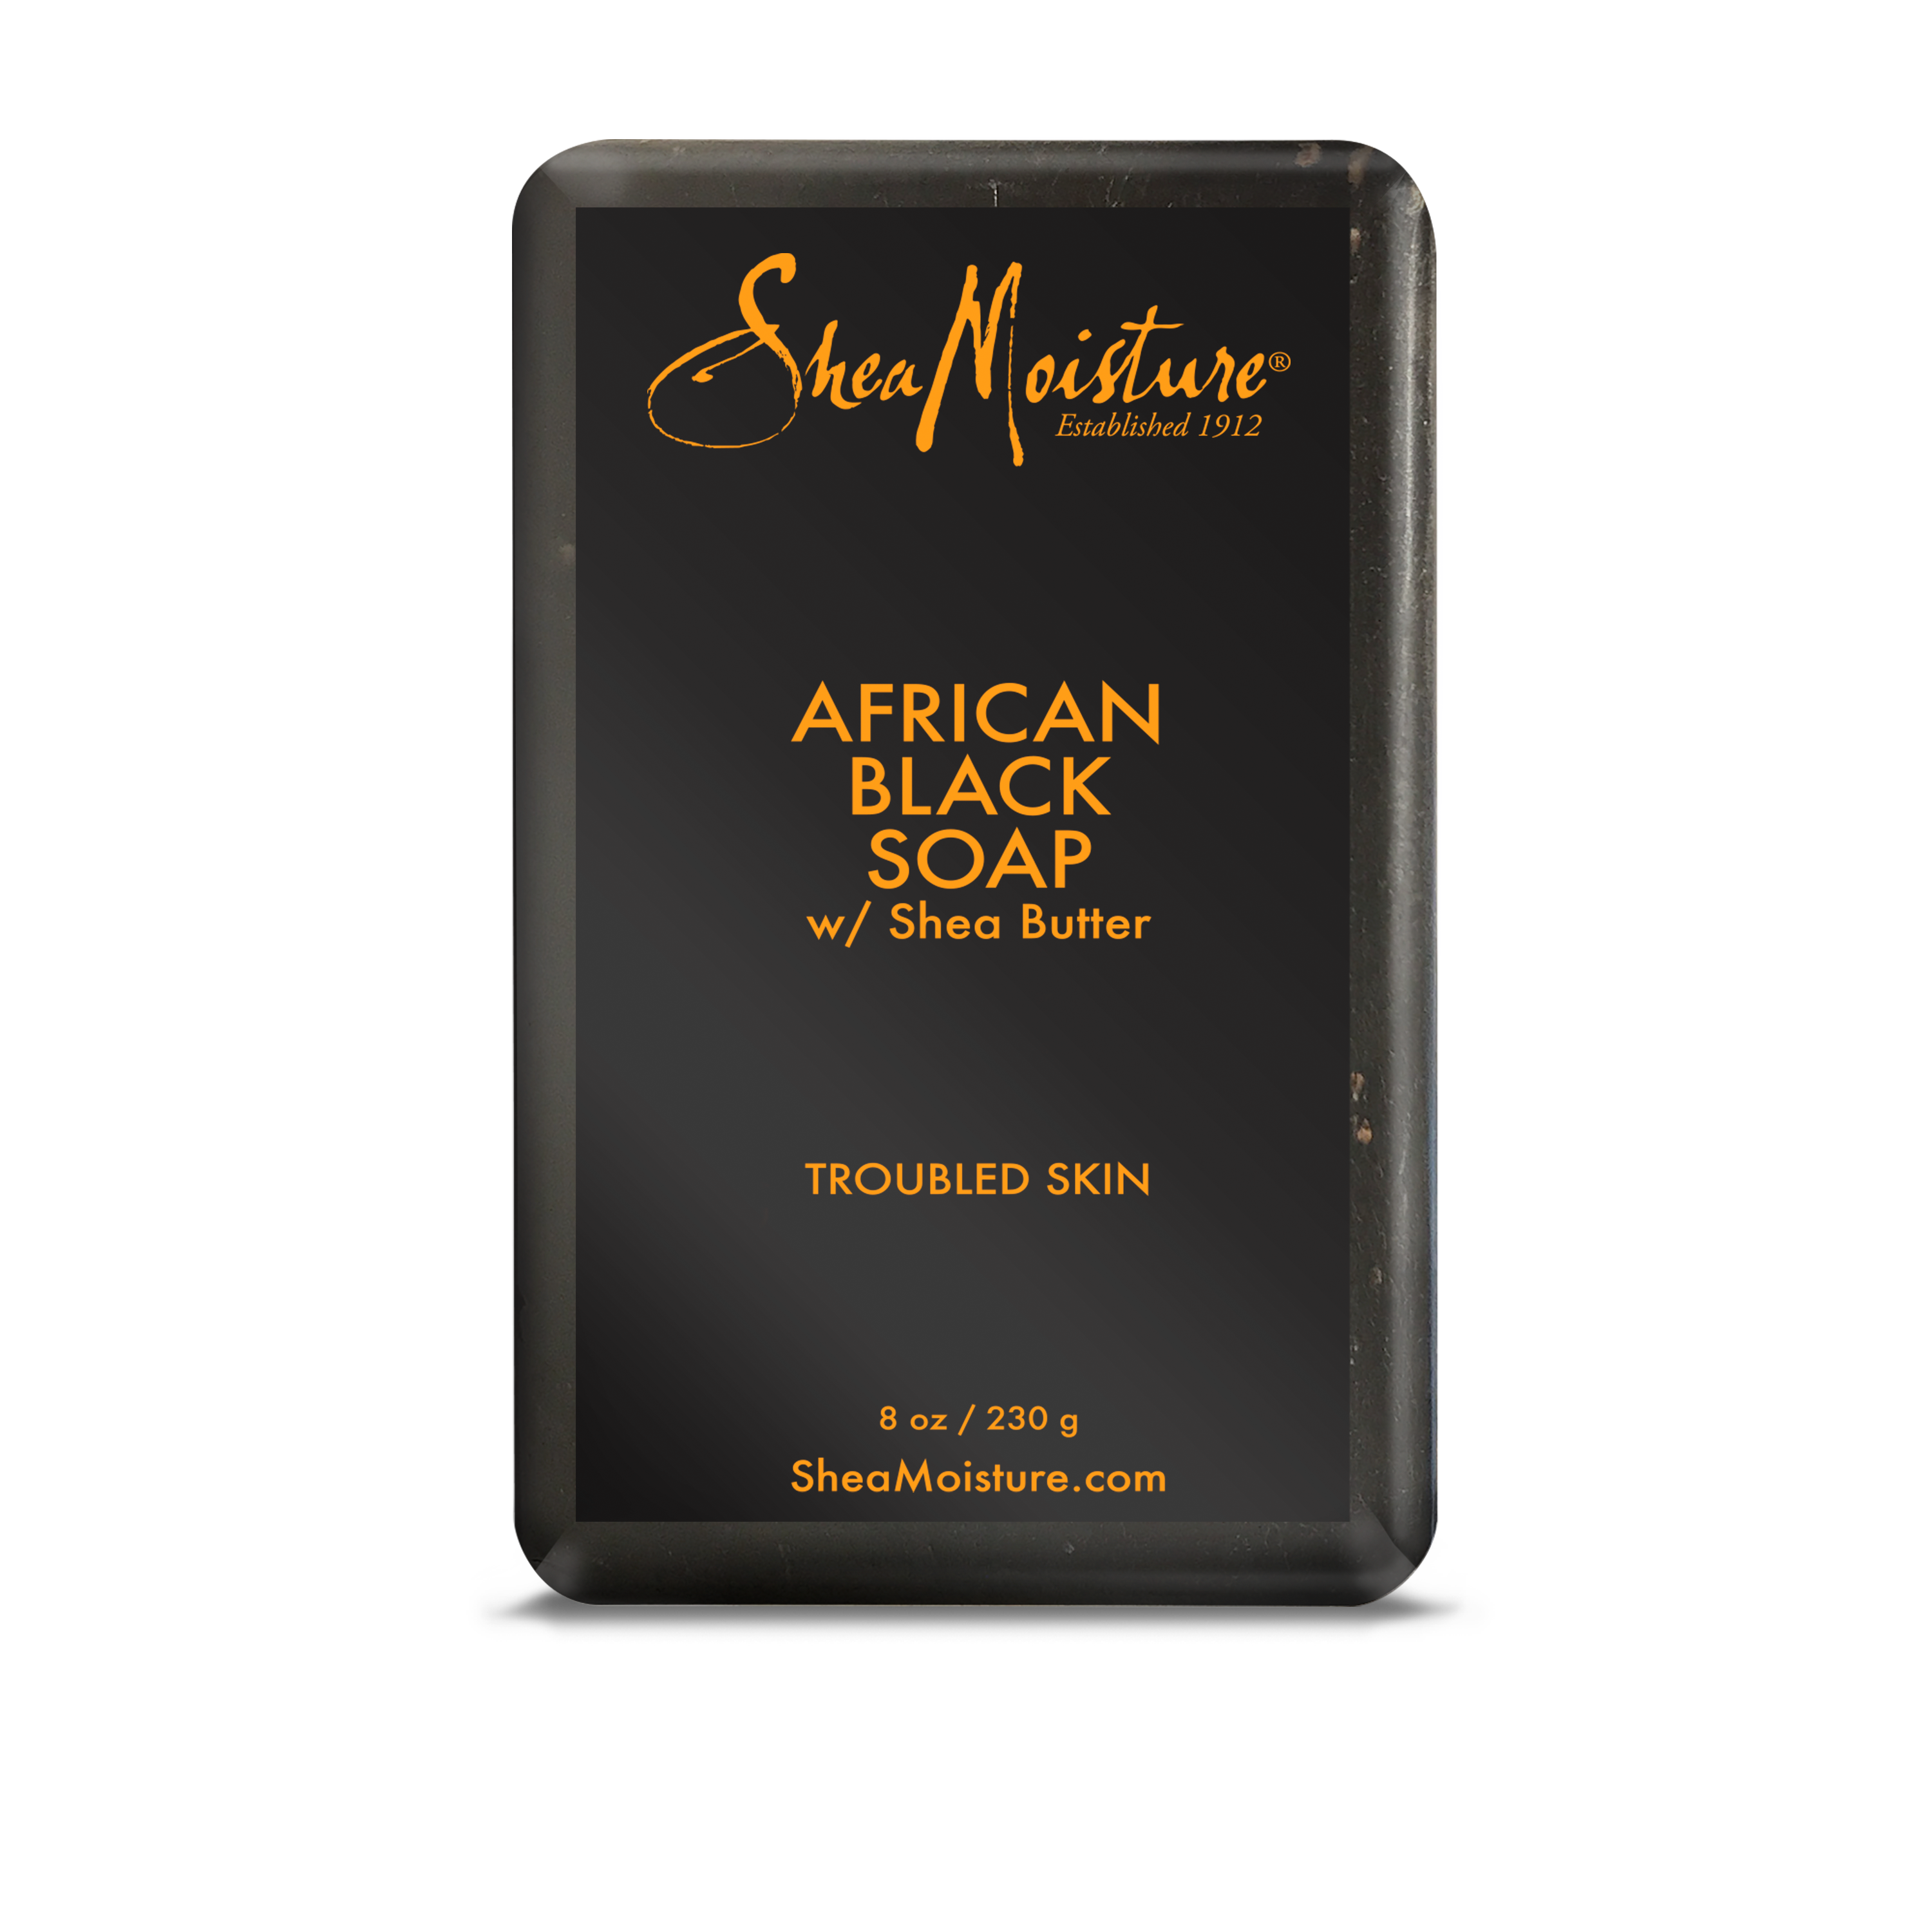 Transparent soaps black. African soap soothes and